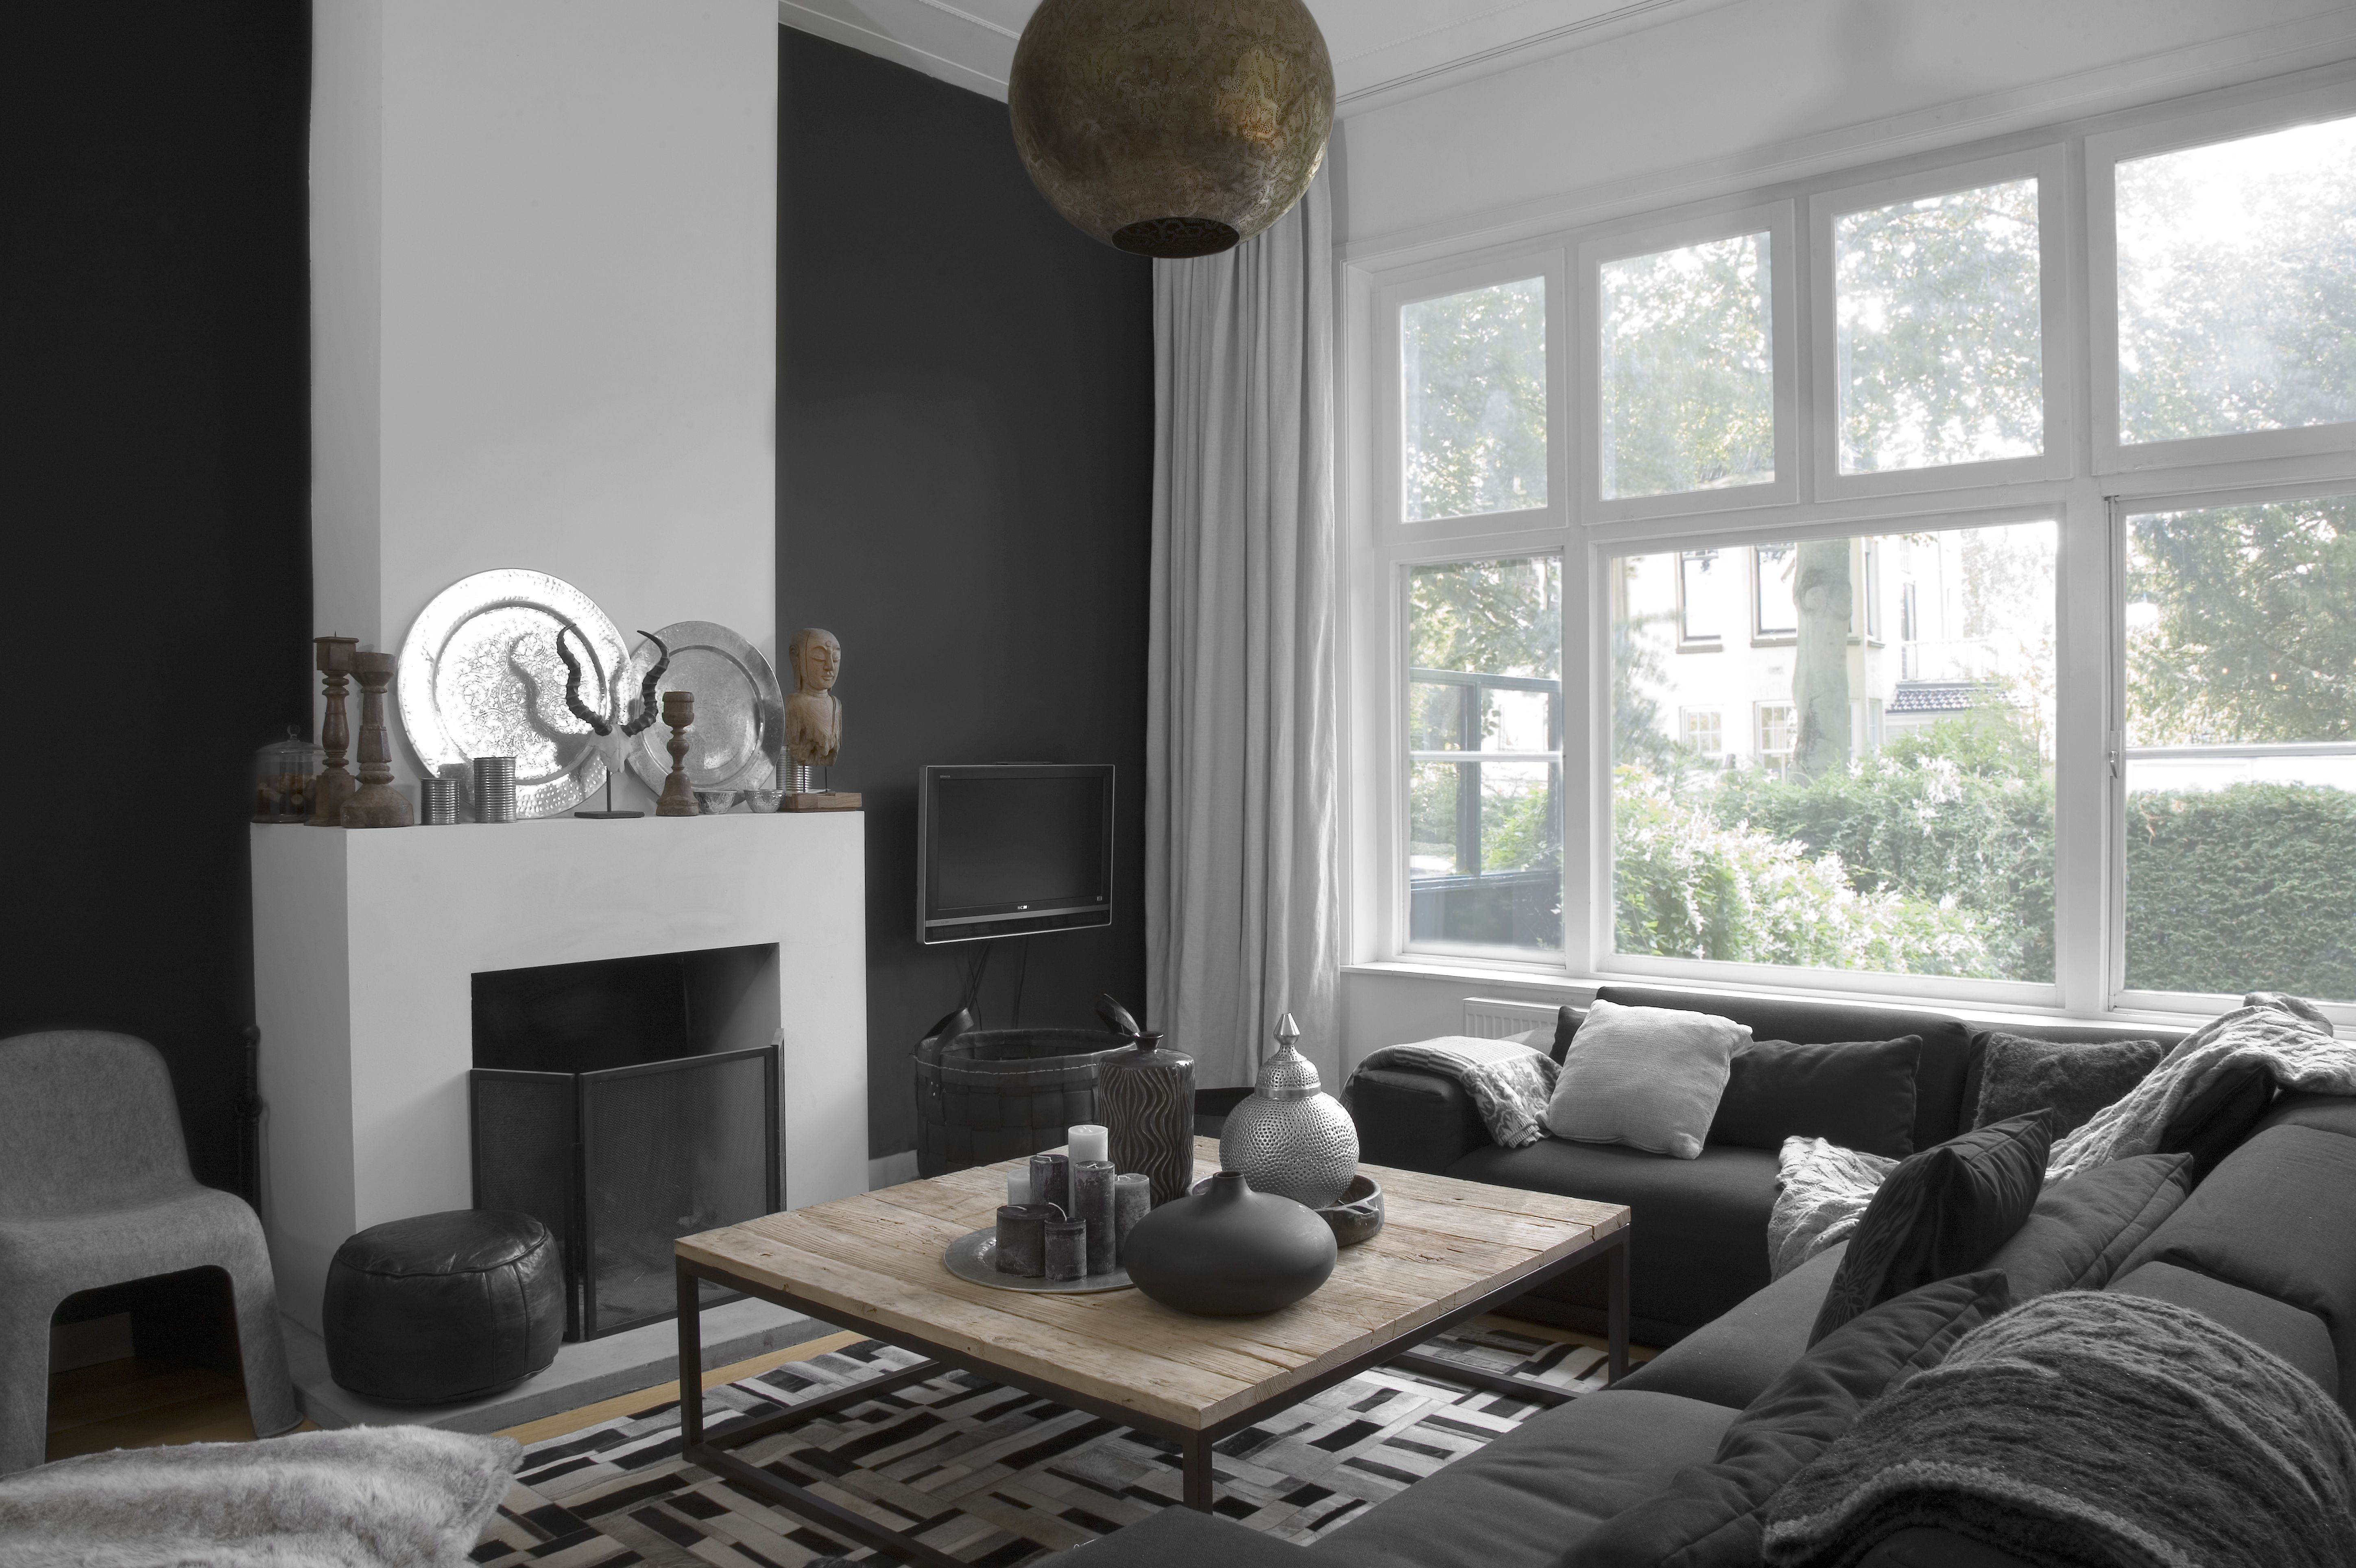 Home interior design drawing room styling by ontwerpstudio   brochure   for loods   home